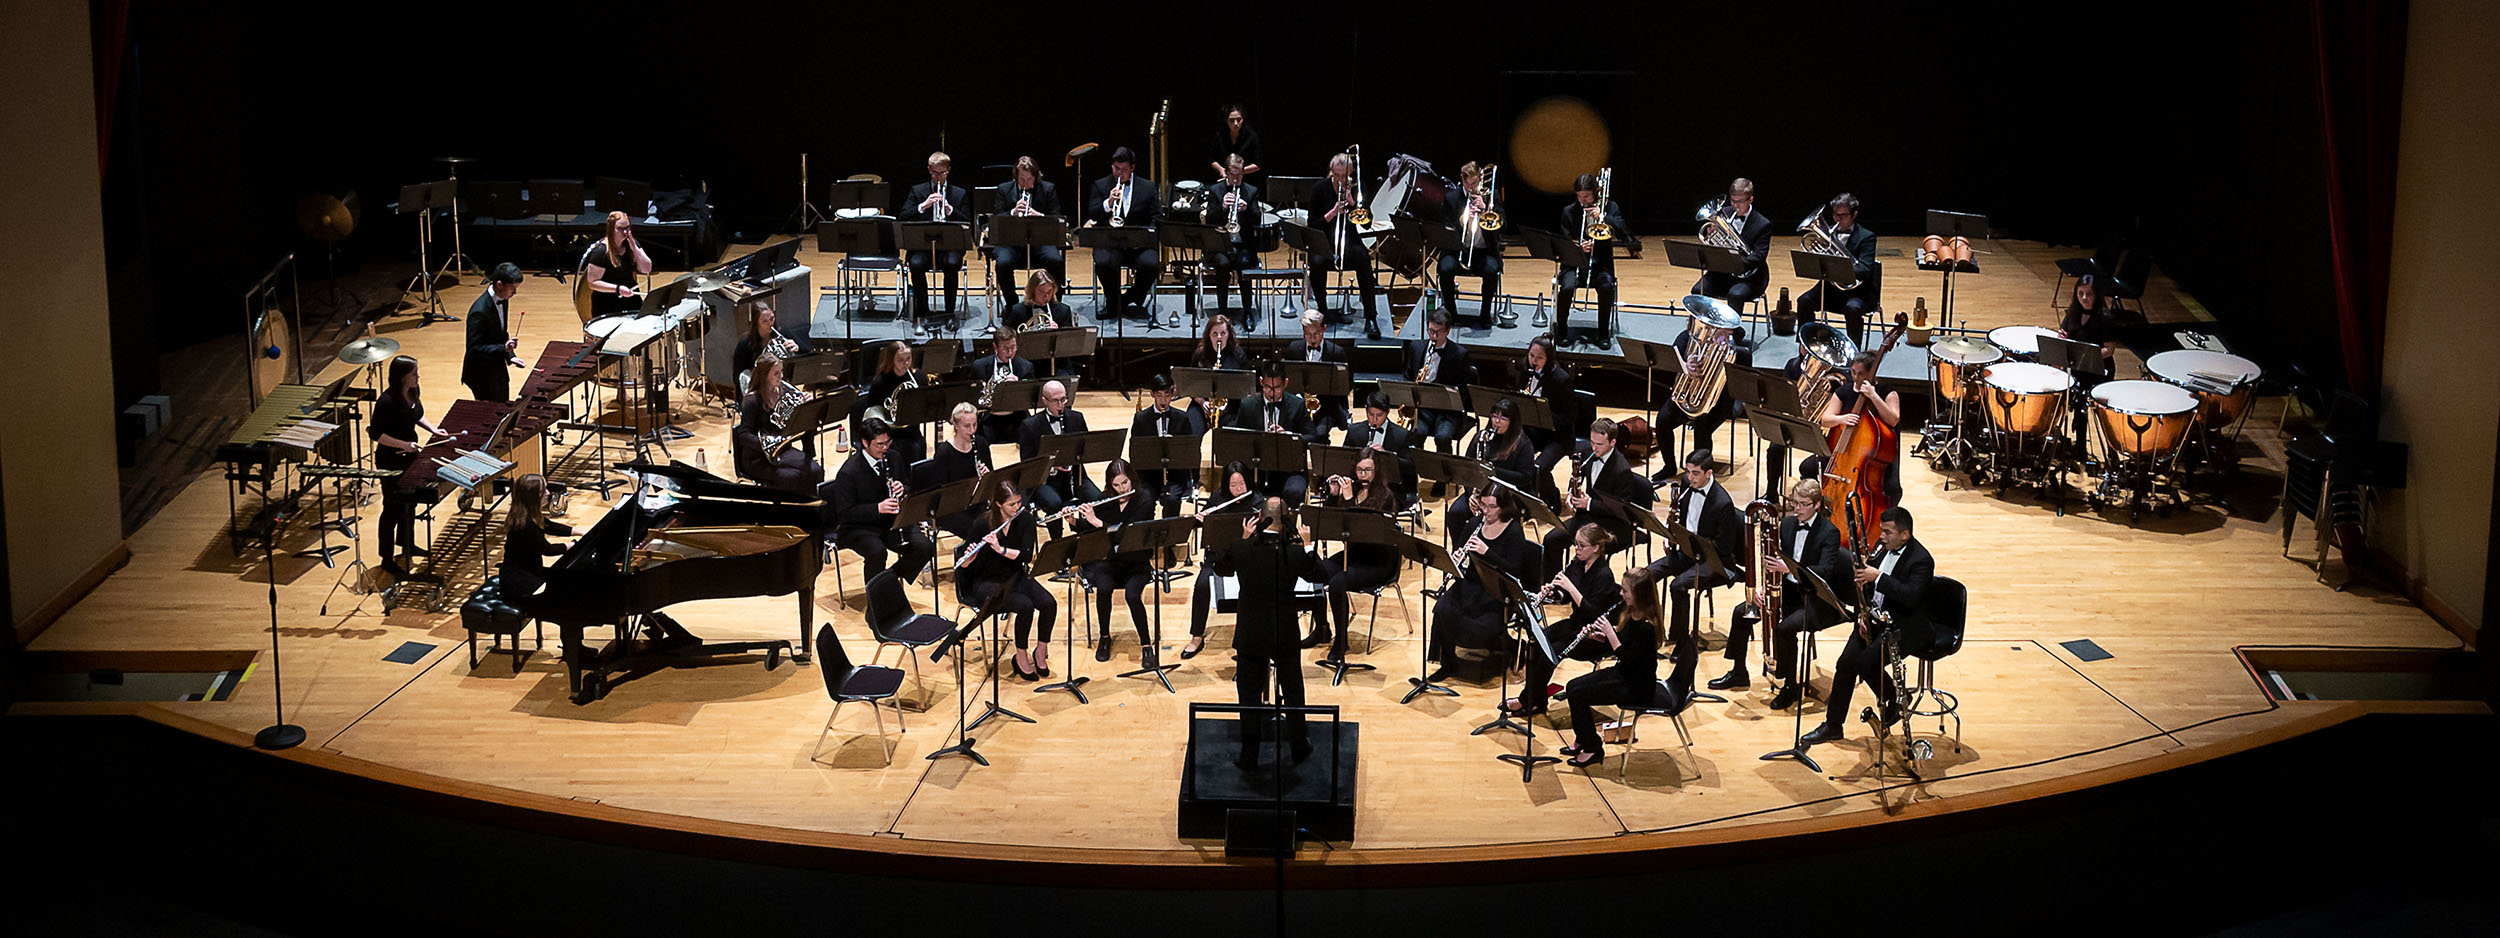 OSU Wind Ensemble 2019-2020 conducted by Dr. Erik Leung